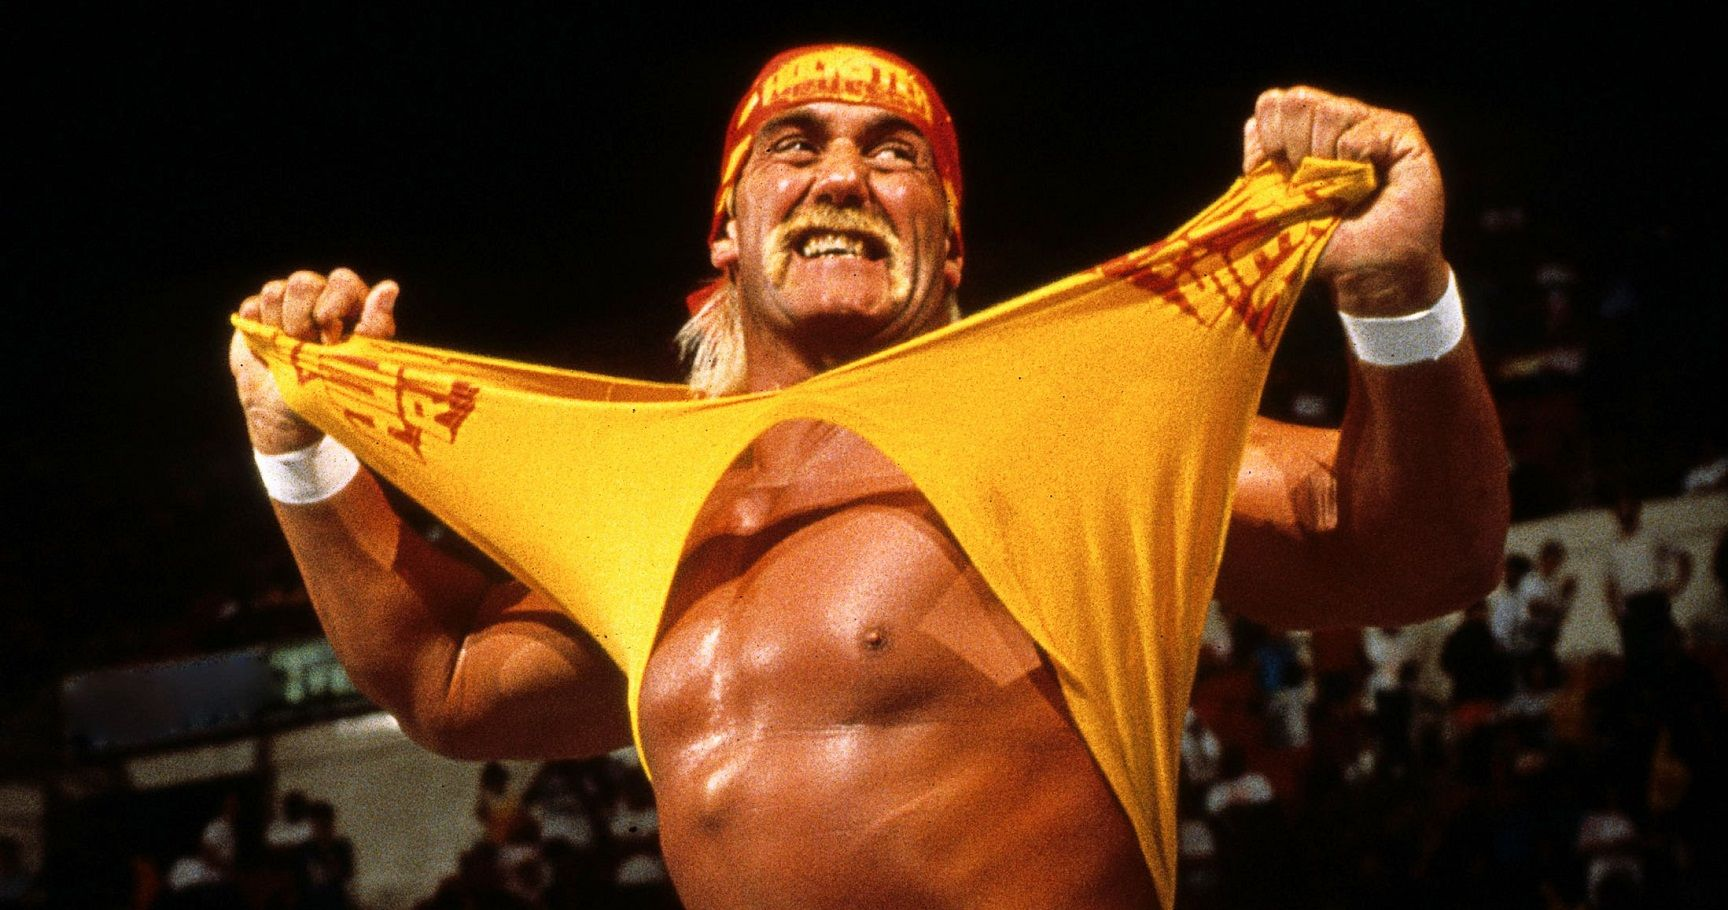 Top 20 Biggest Steroid Users in WWE History